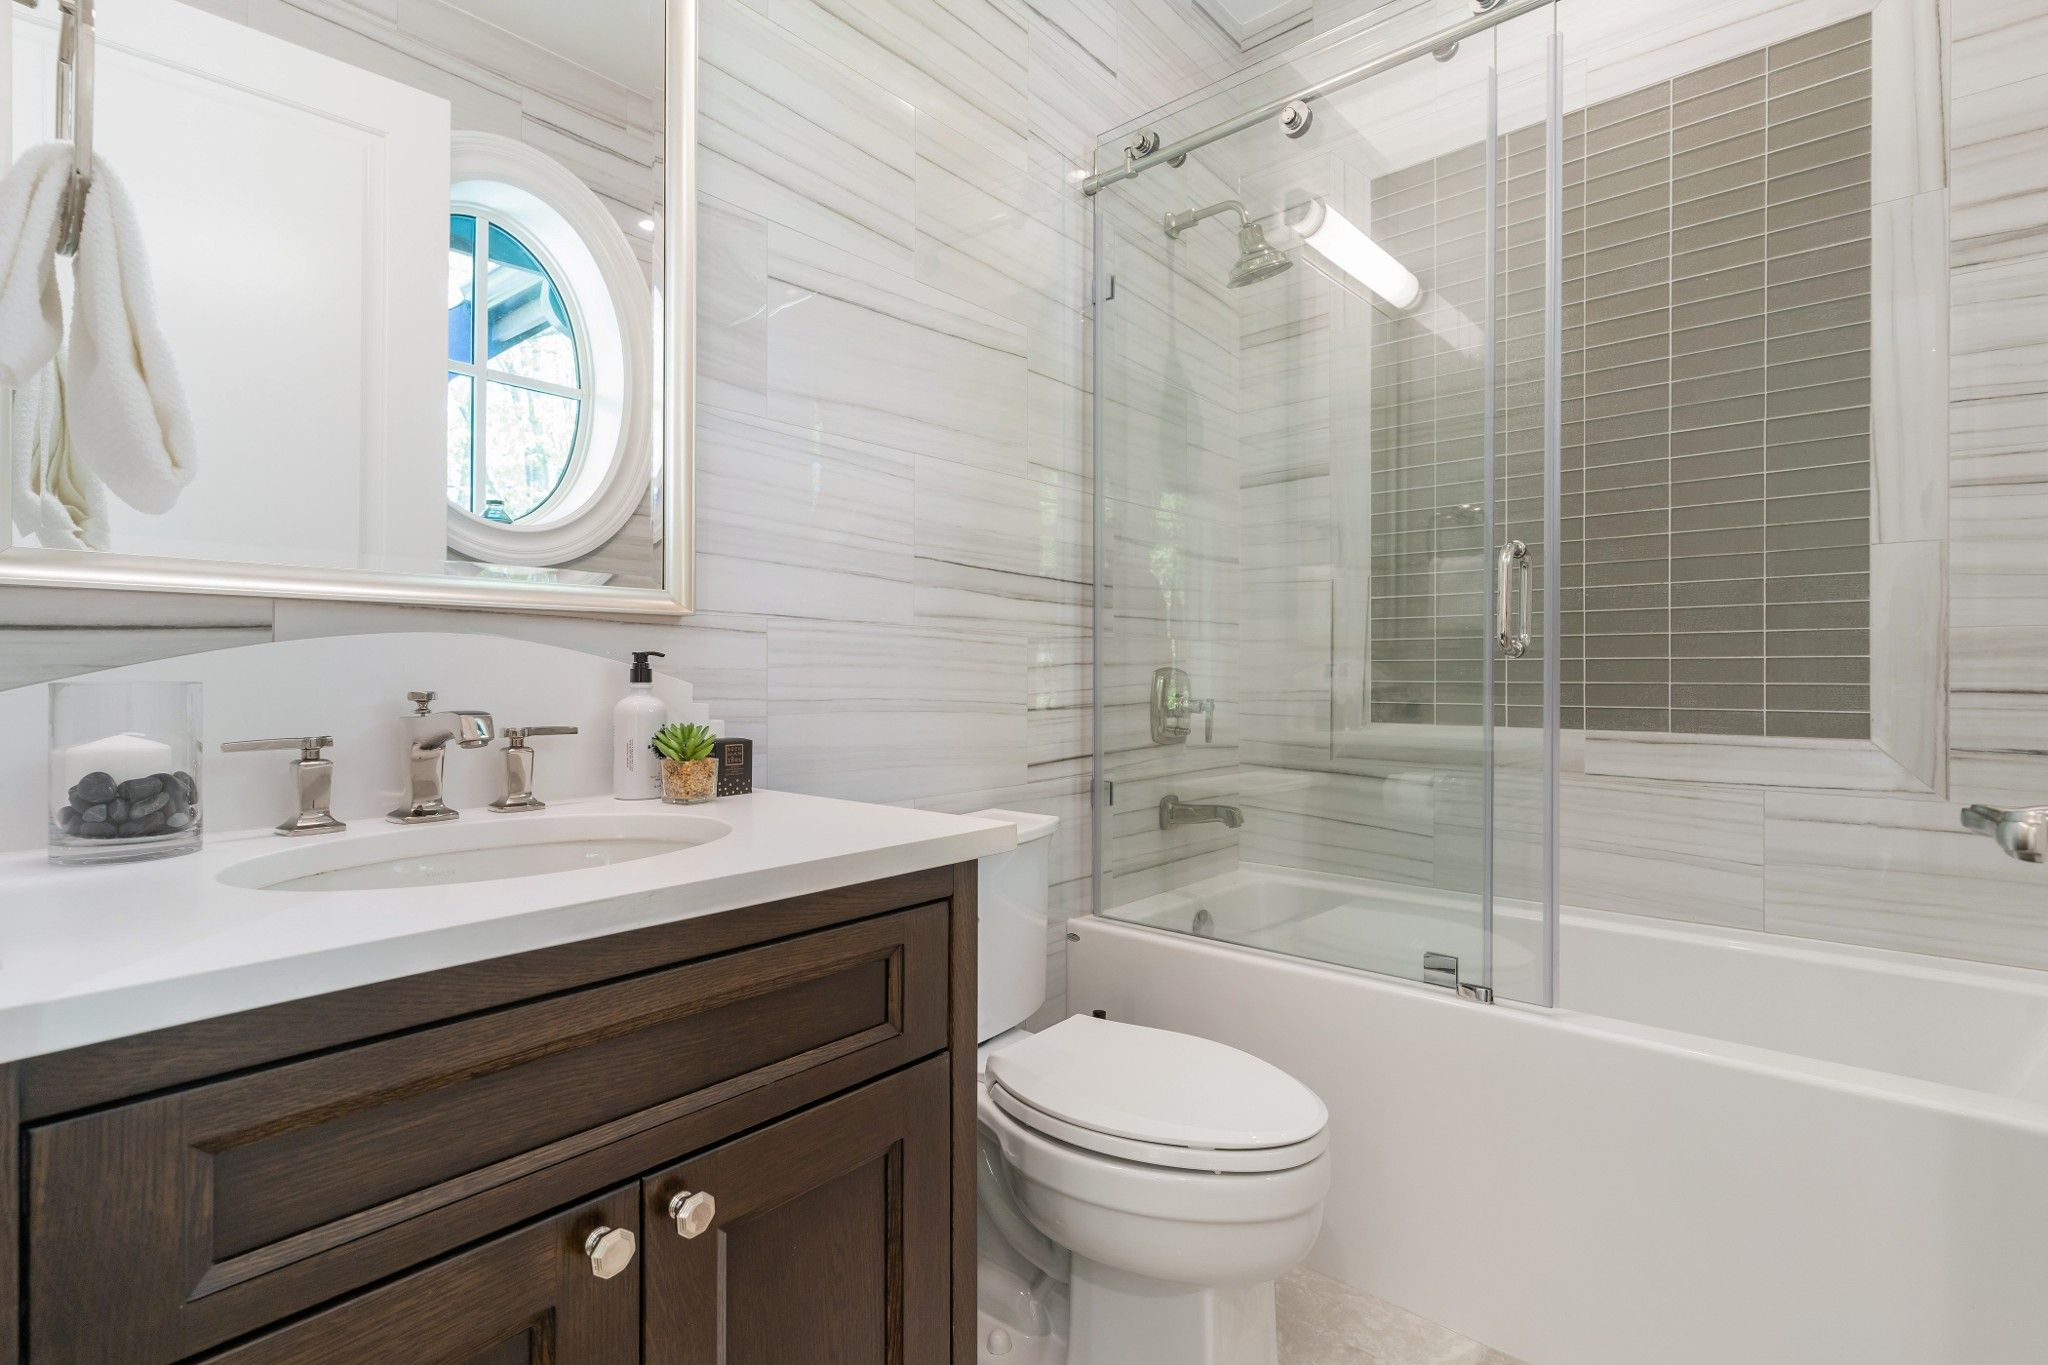 Photo 101: Photos: 5756 ALMA STREET in VANCOUVER: Southlands House for sale (Vancouver West)  : MLS®# R2588229